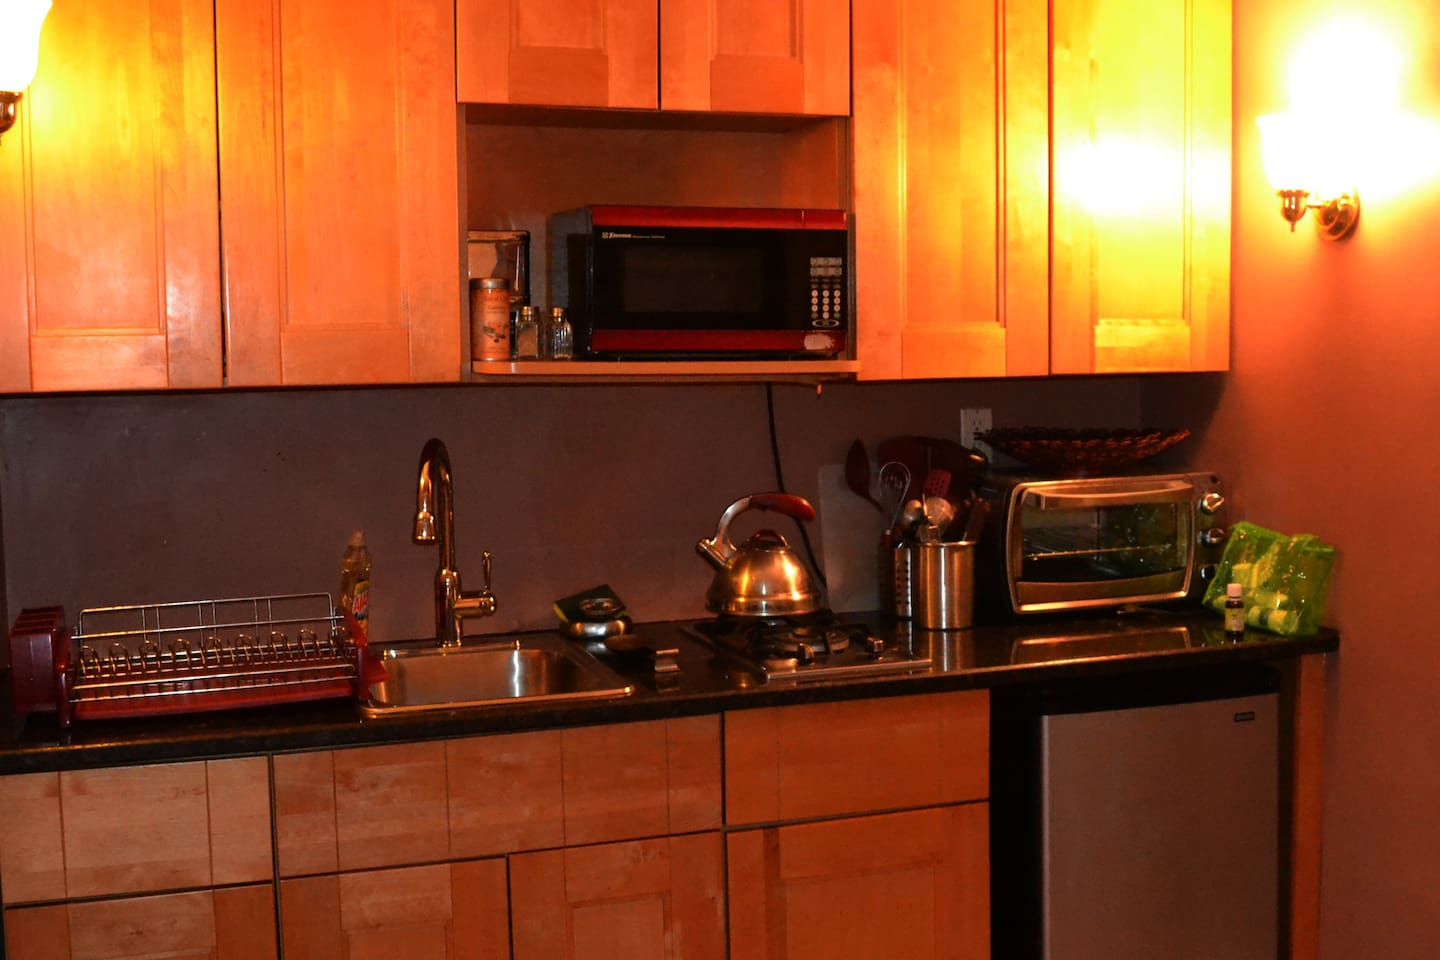 The kitchenette has stainless steel appliances, an under-counter refrigerator, and a granite countertop. The kitchenette is fully loaded with plates, pots, pans, utensils, serving dishes, wine glasses (very important), and much more....